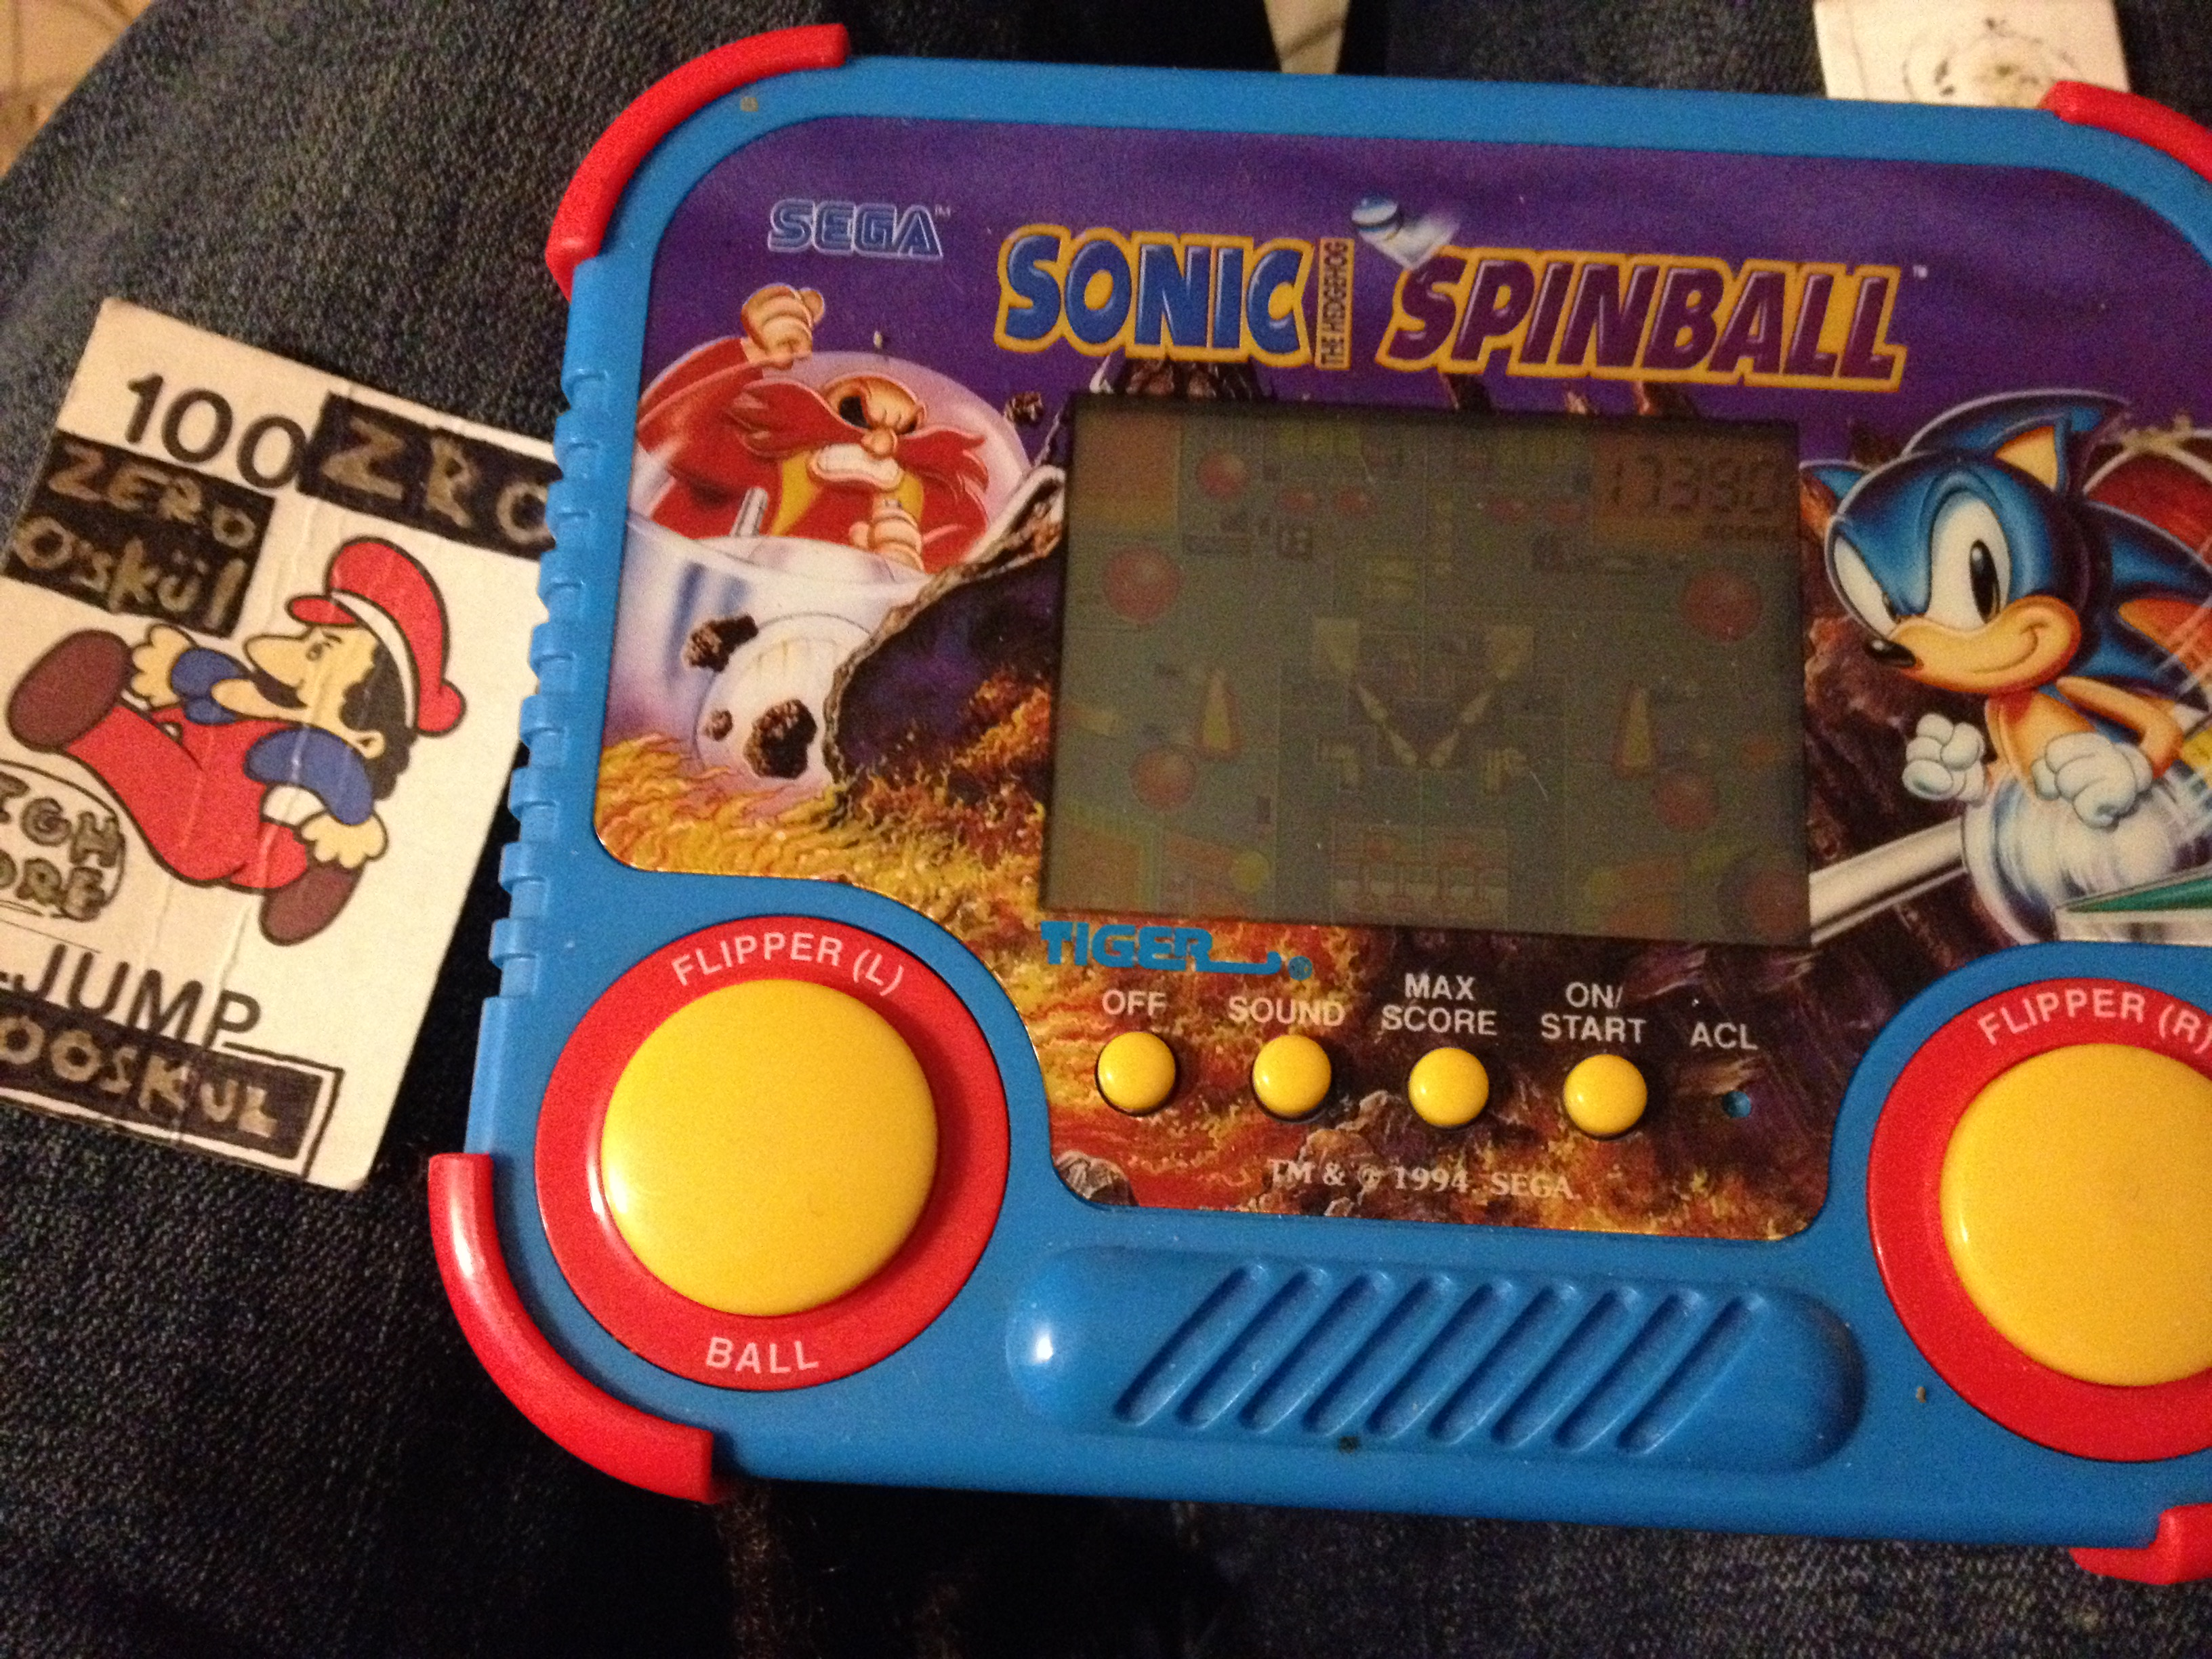 Tiger Electronics Sonic Spinball 17,390 points